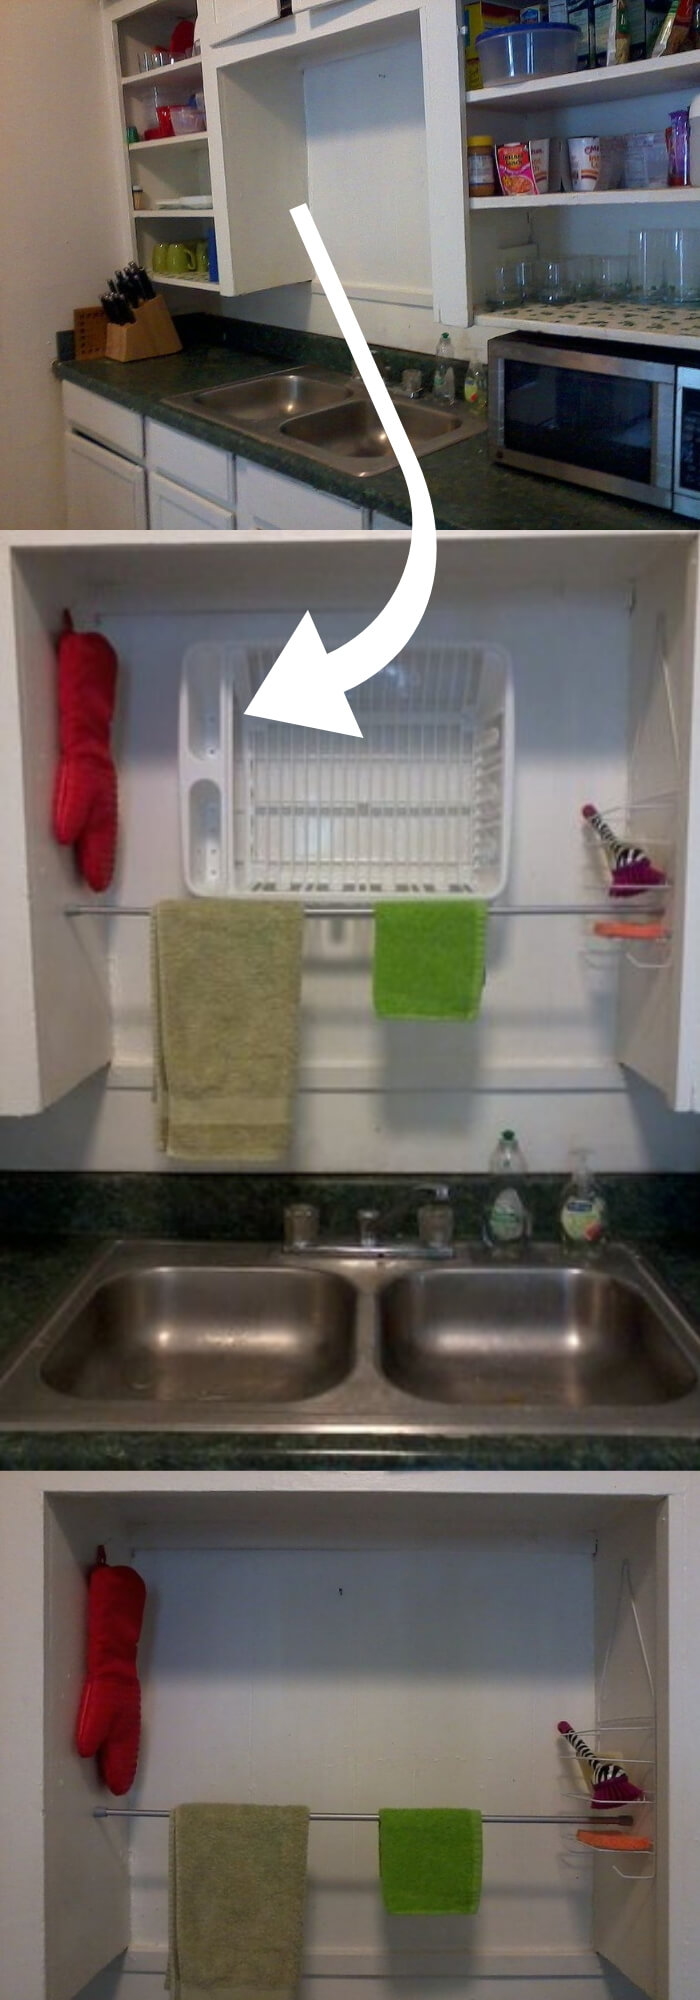 A dish draining rack above the sink